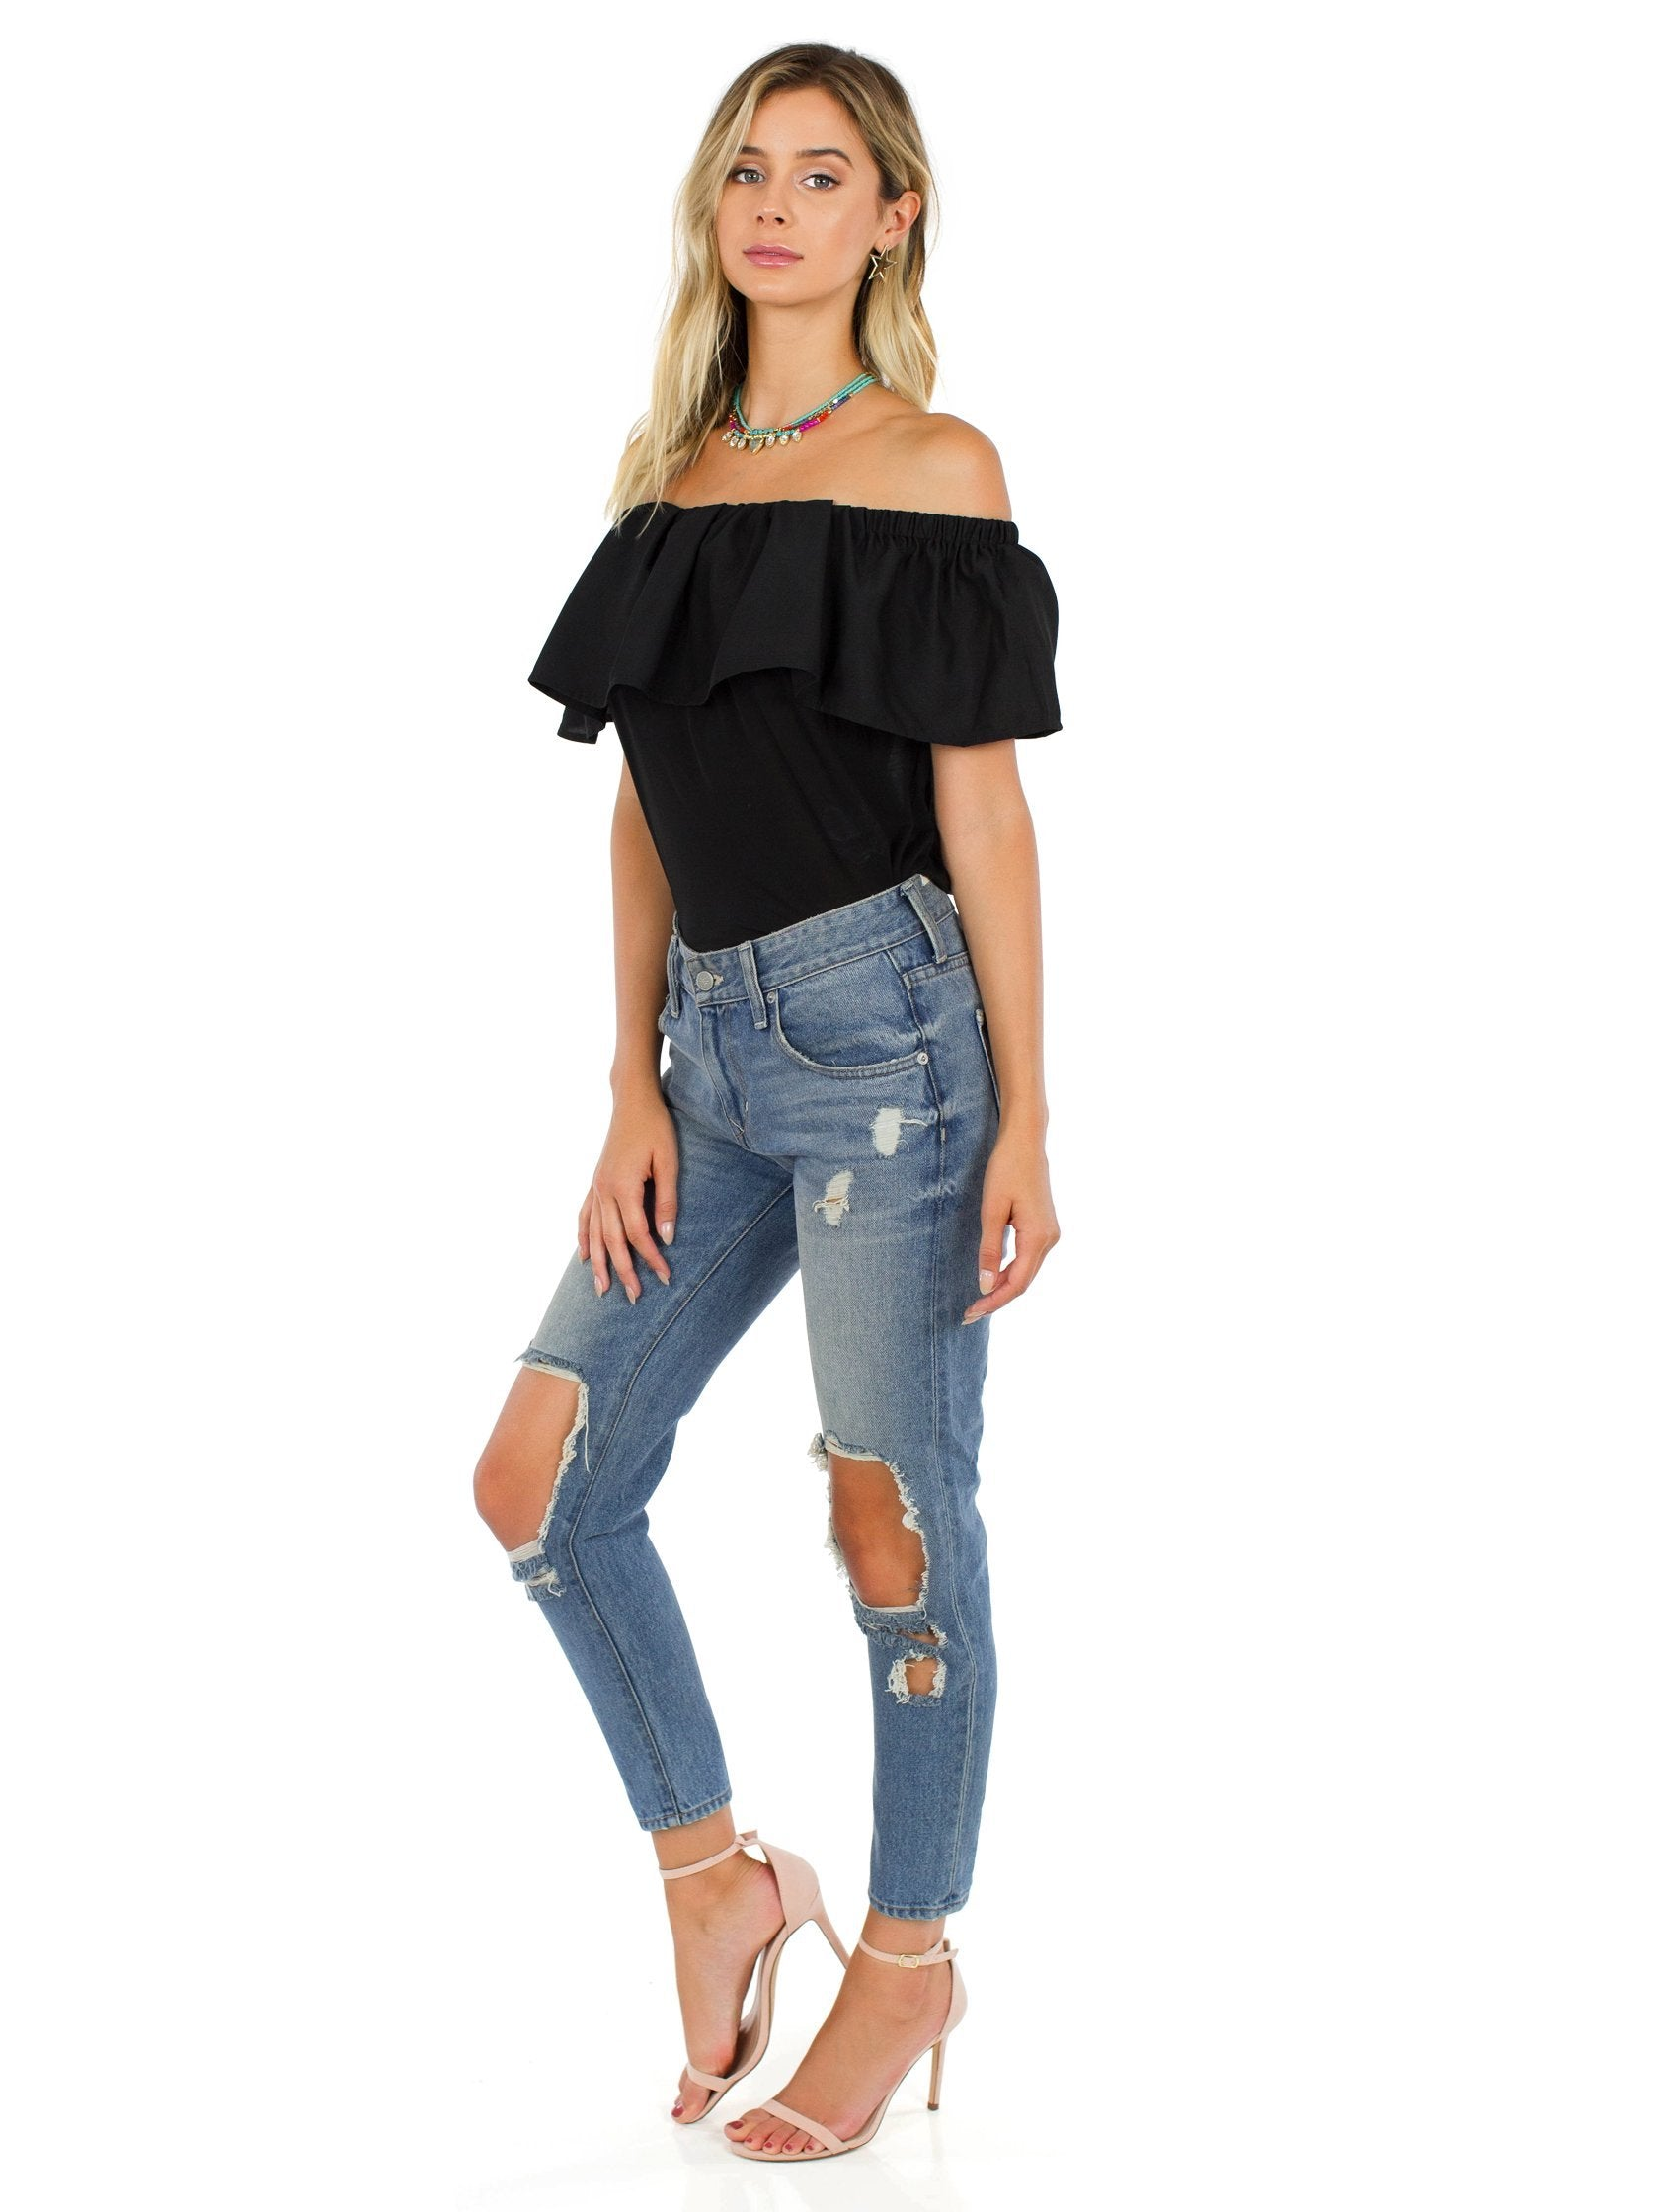 Women outfit in a top rental from French Connection called Polly Plains Off-the-shoulder Top